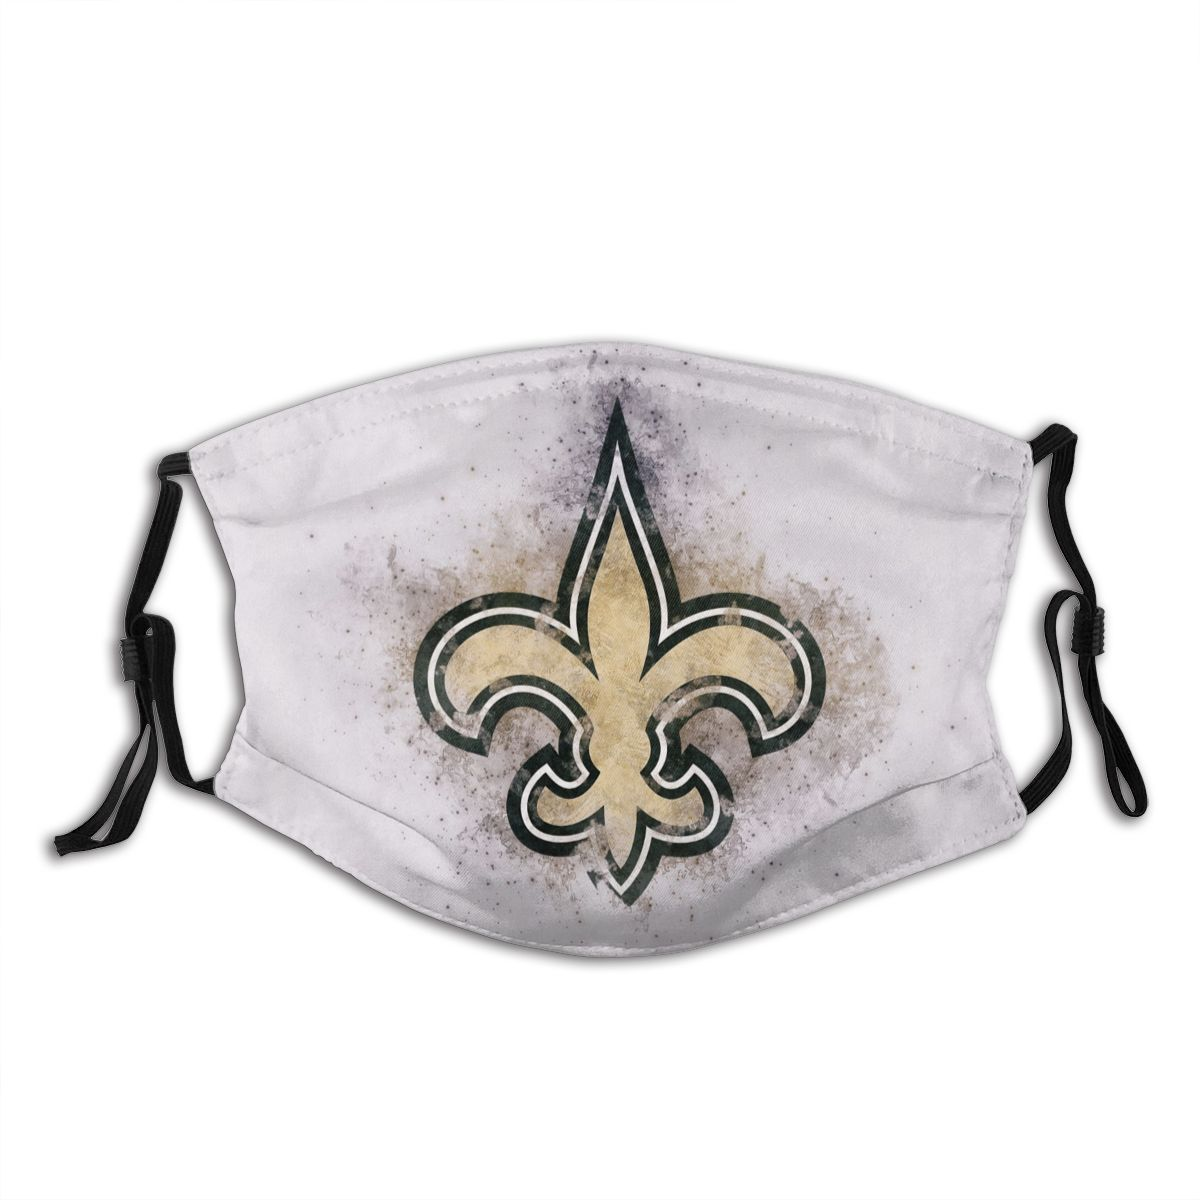 Saints Logo Adult Cloth Face Covering With Filter